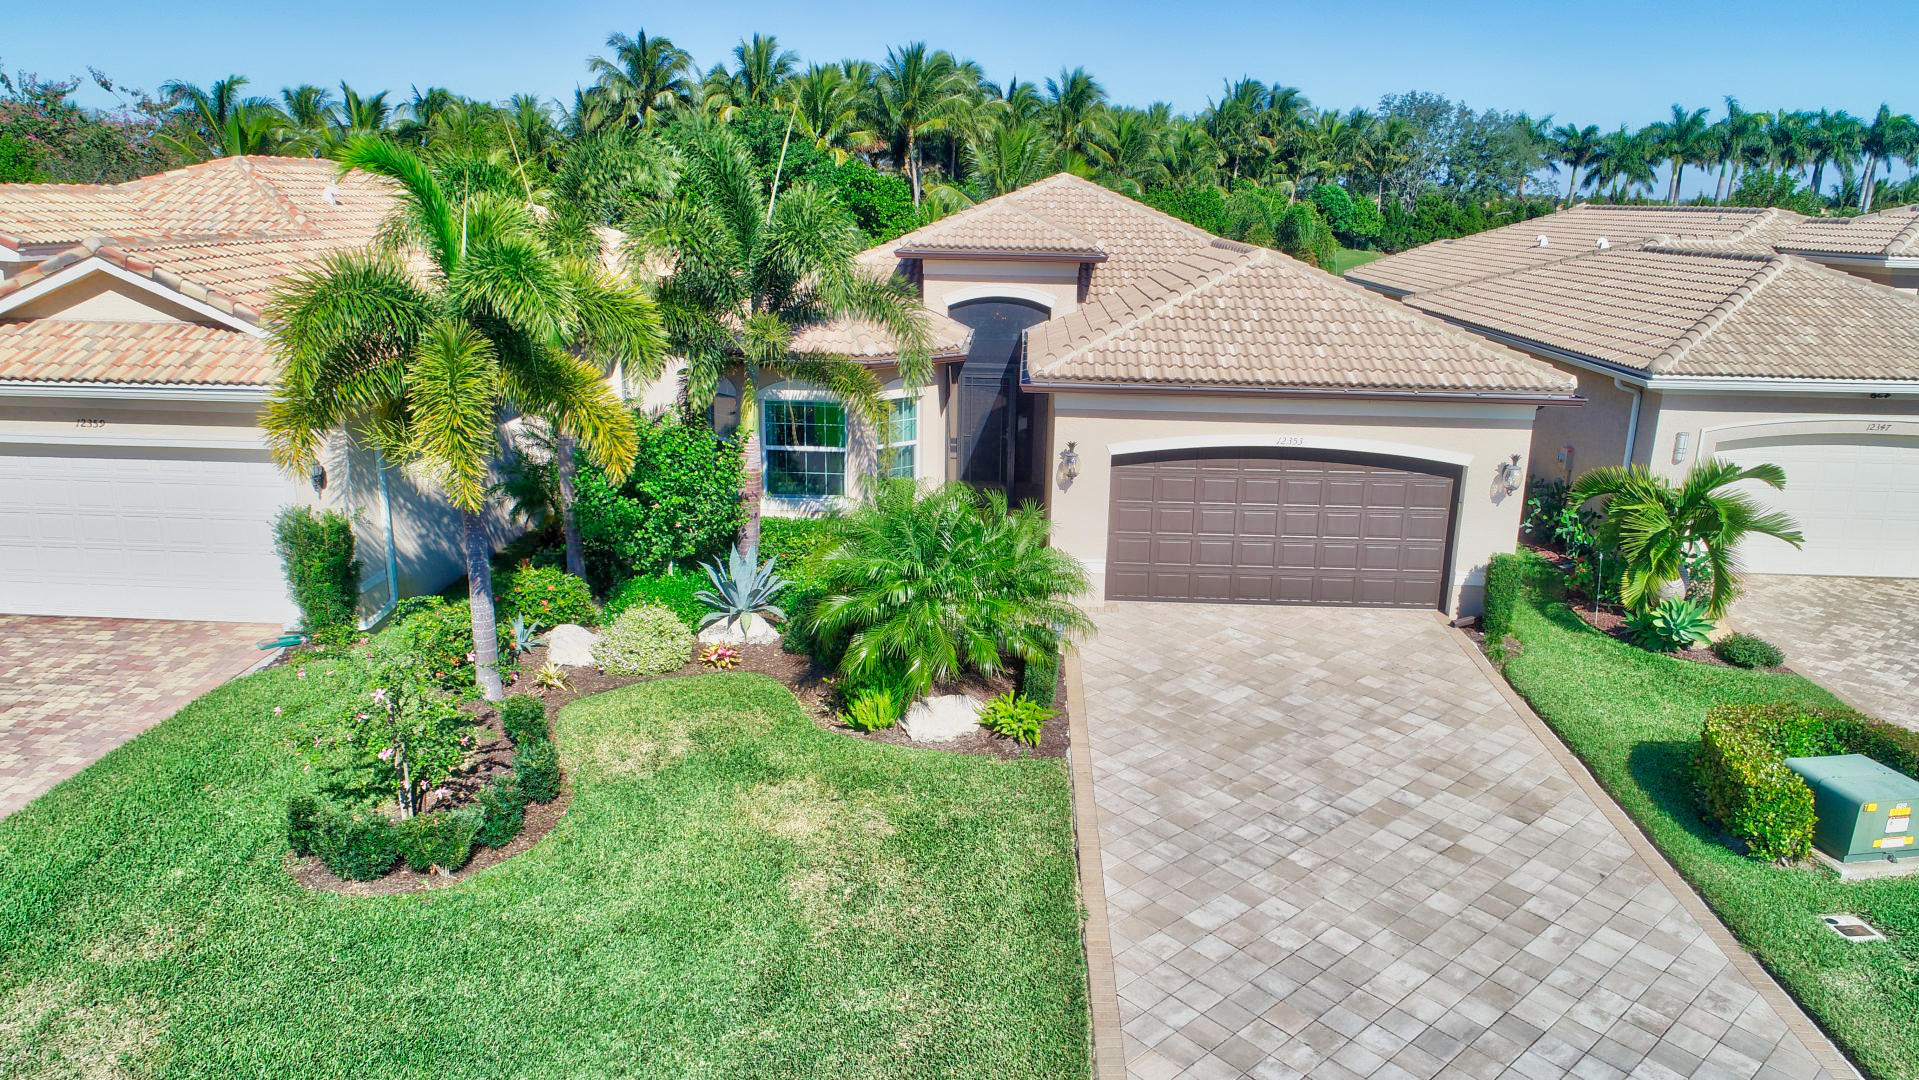 VALENCIA COVE home 12353 Laguna Valley Terrace Boynton Beach FL 33473